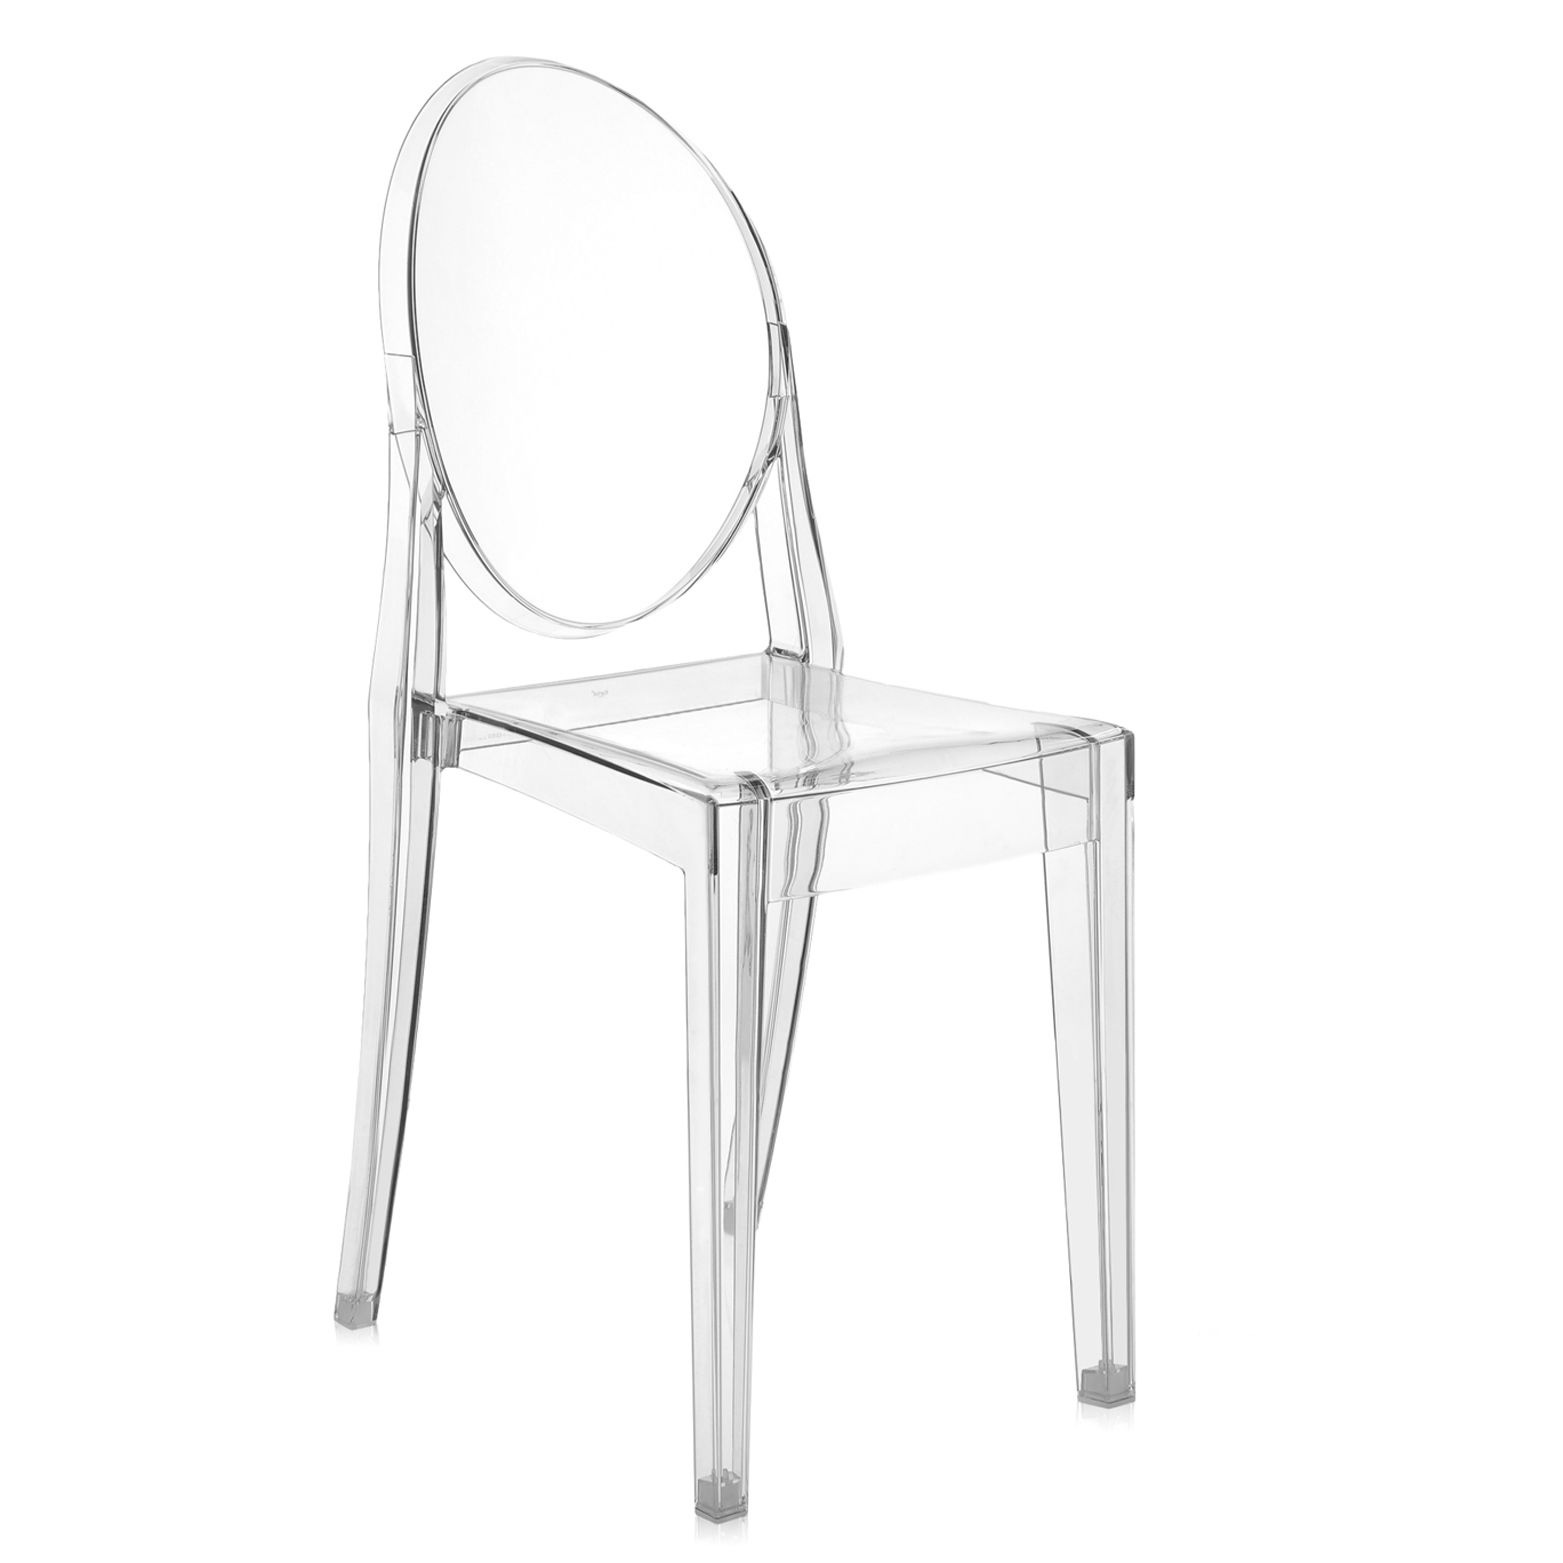 Kartell Düsseldorf ghost chair 4 pack by kartell 4856 b4